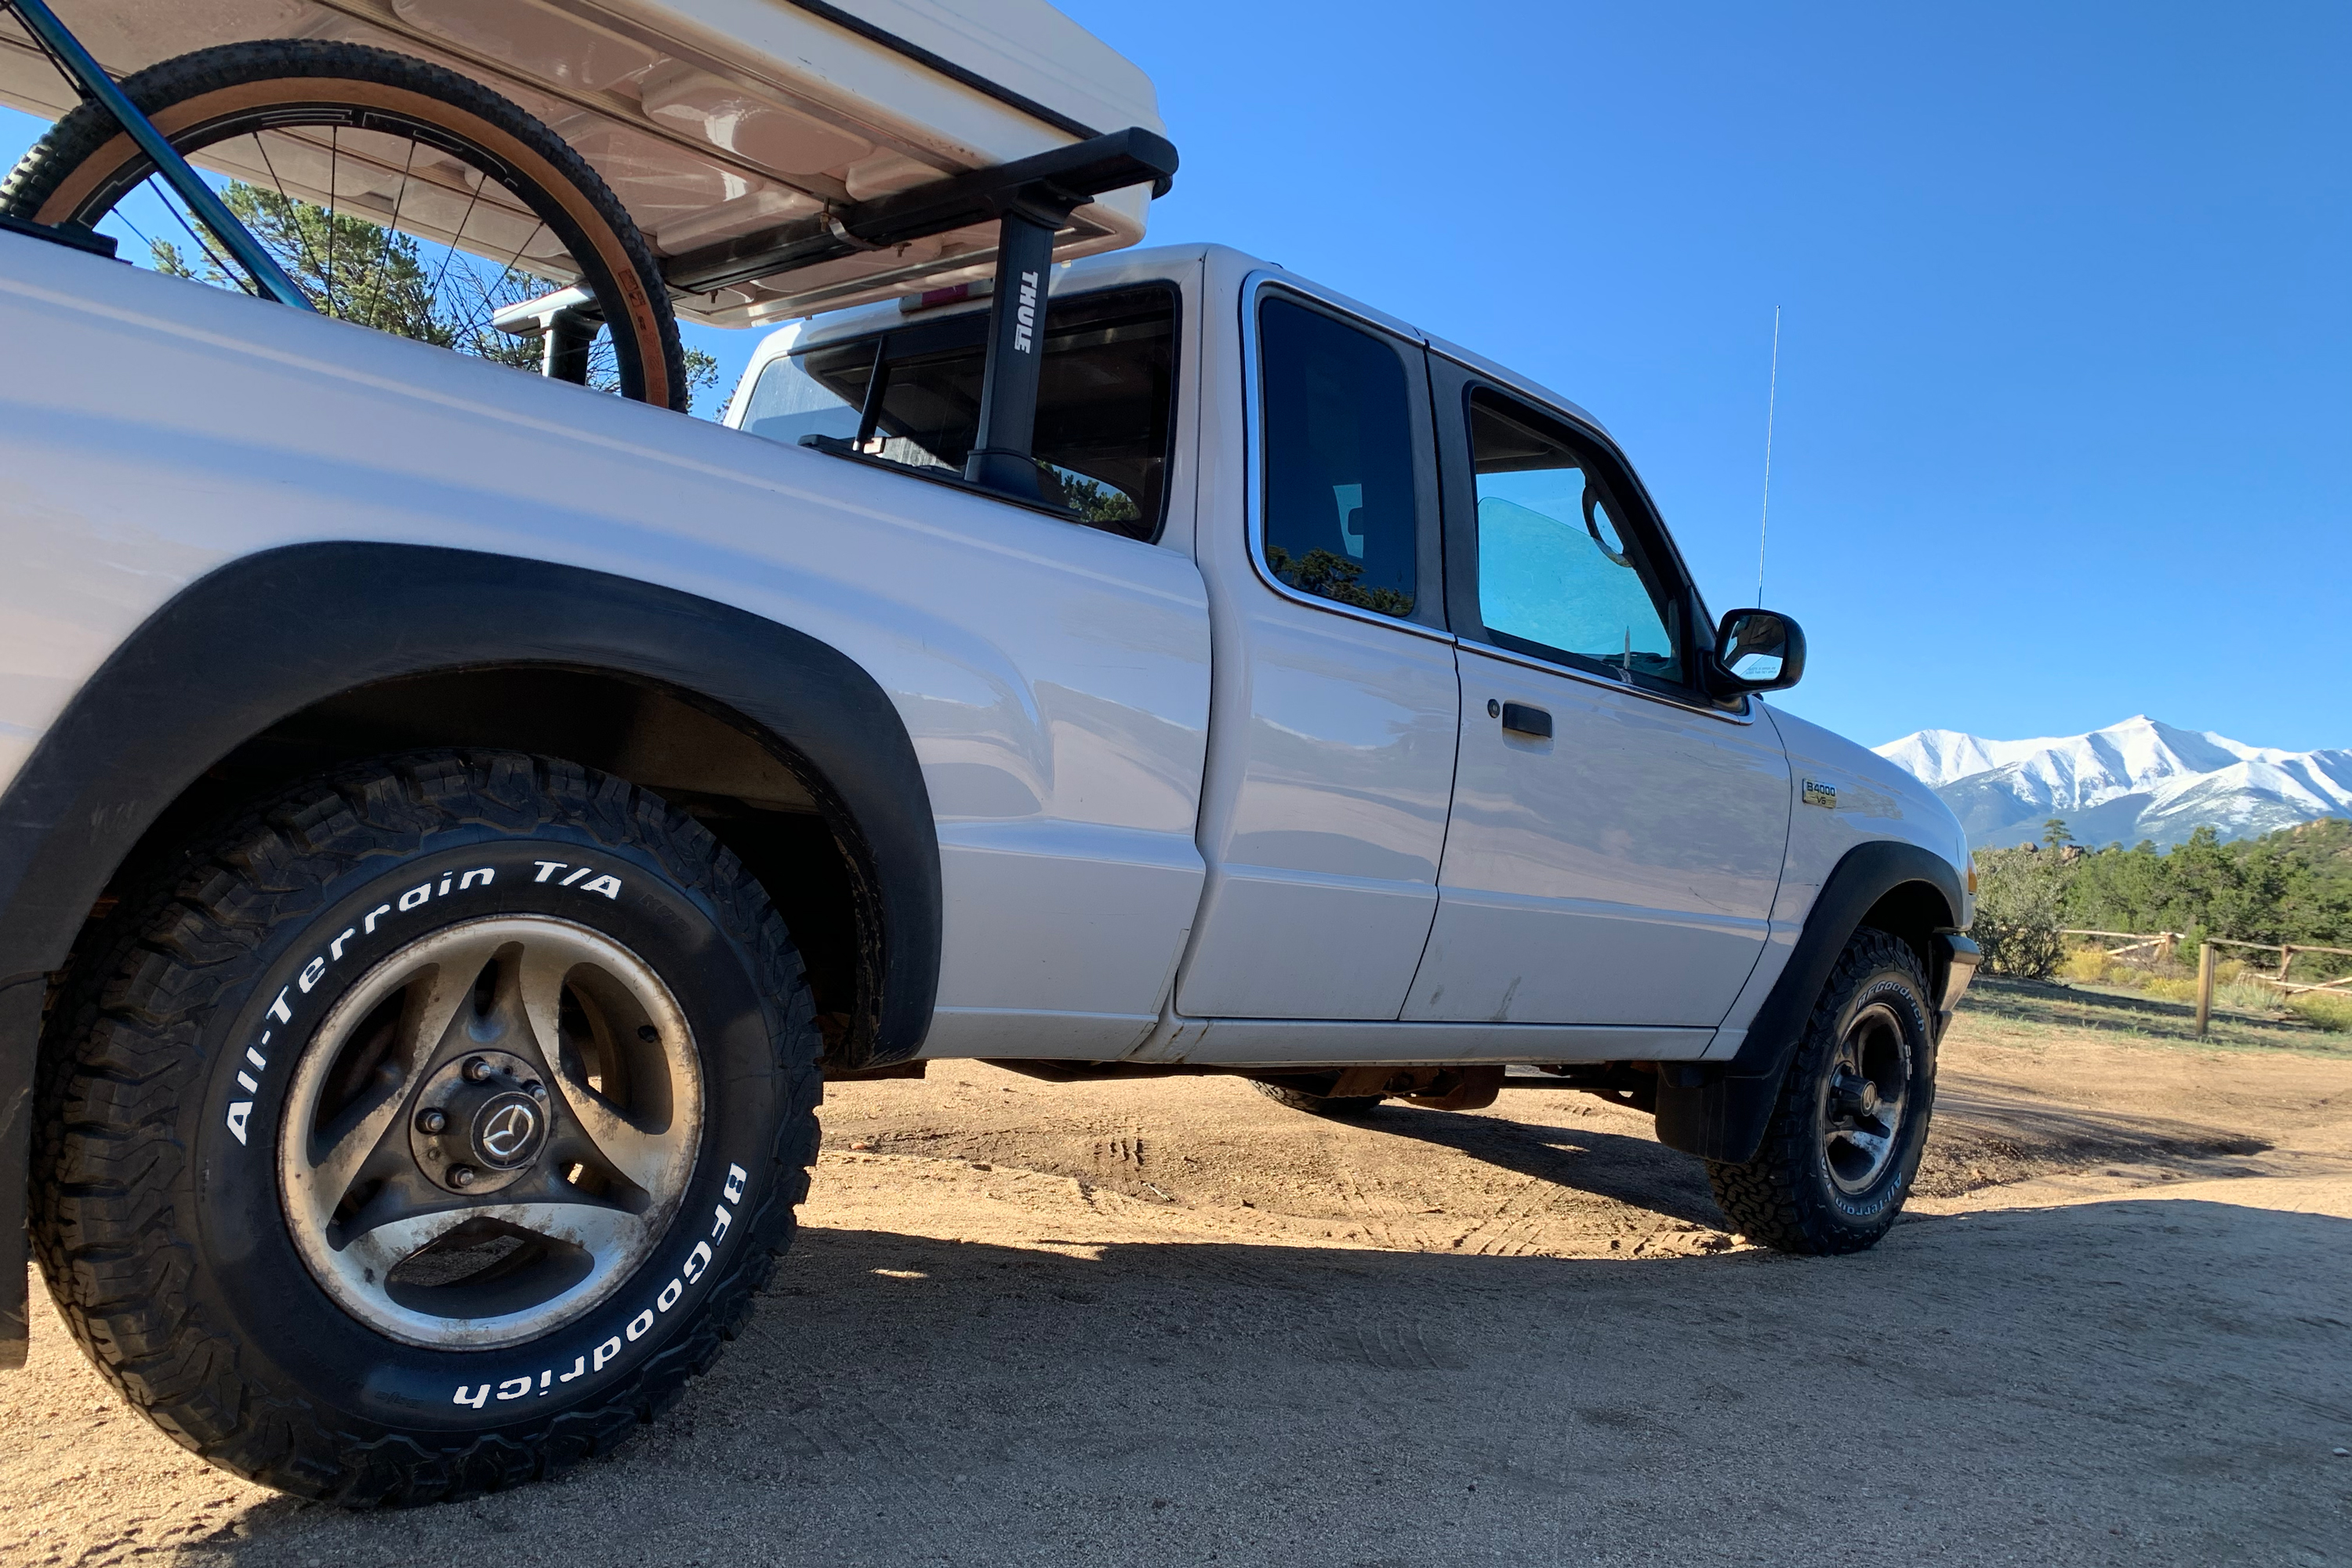 pickup truck dispersed camping off-road tires